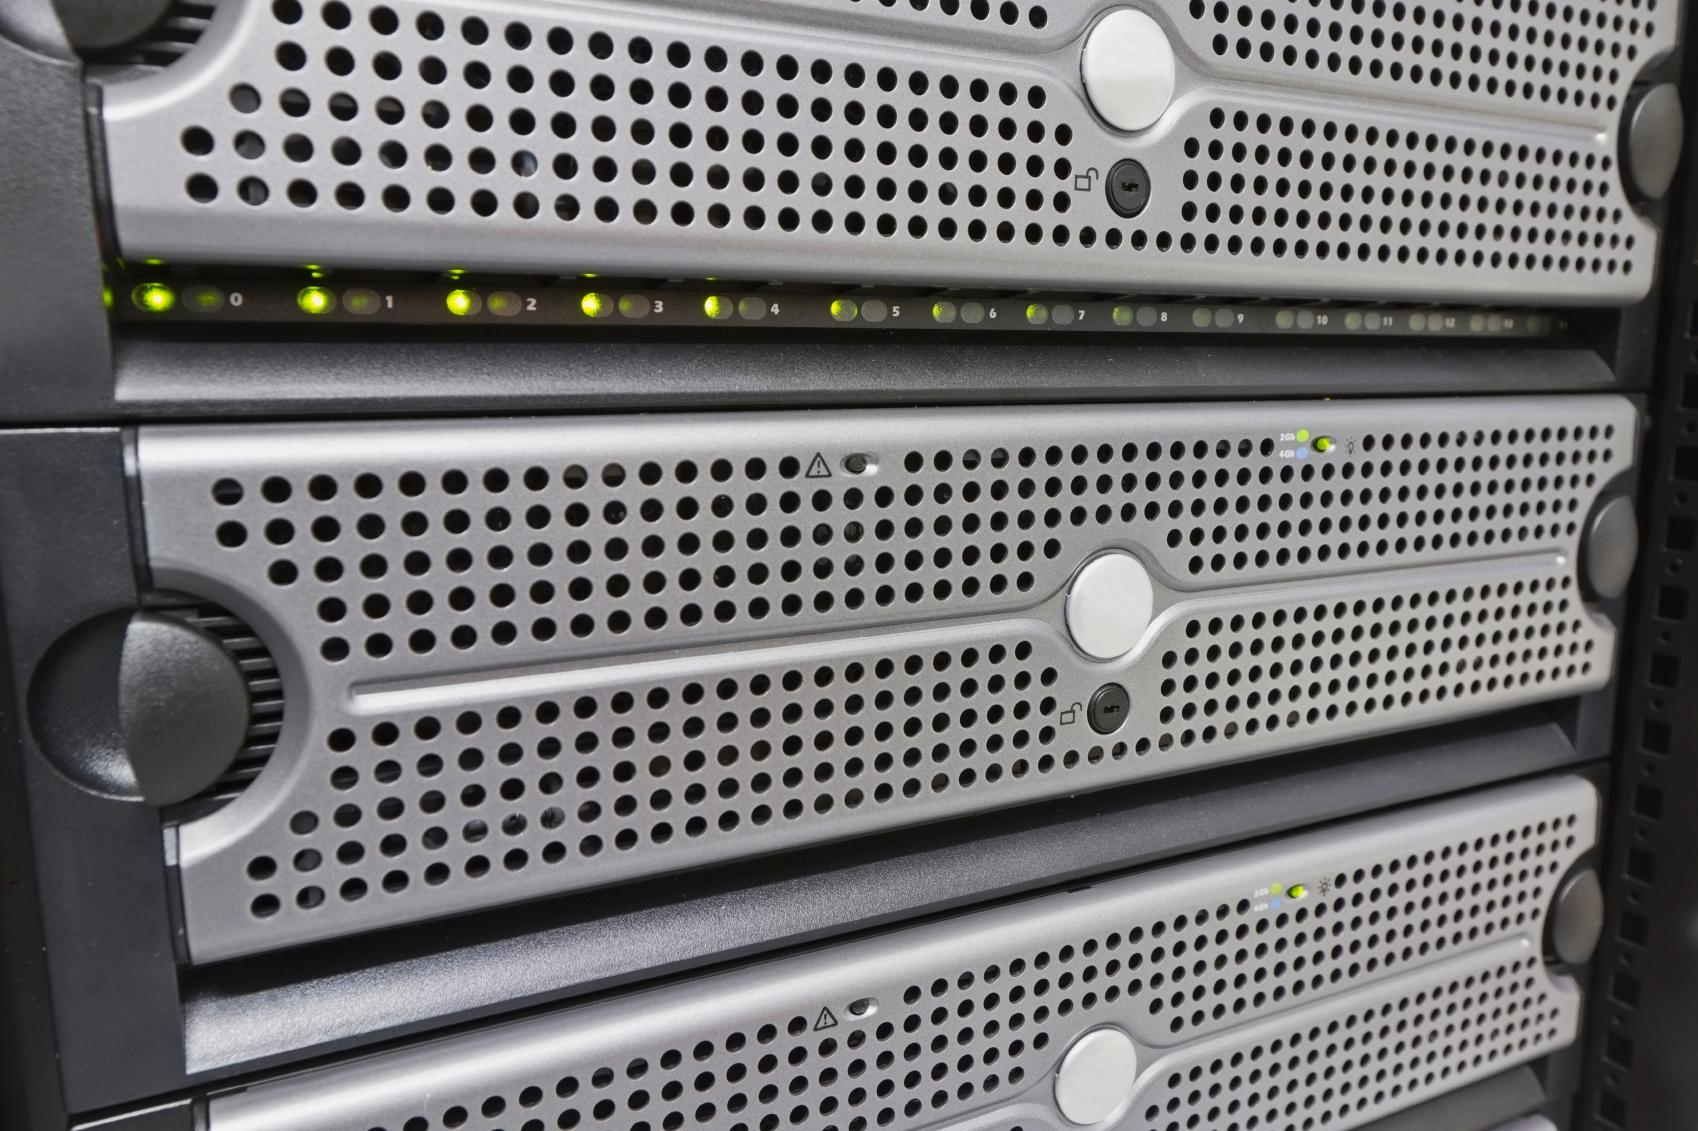 Secure, safe, stress-free server and network equipment relocation